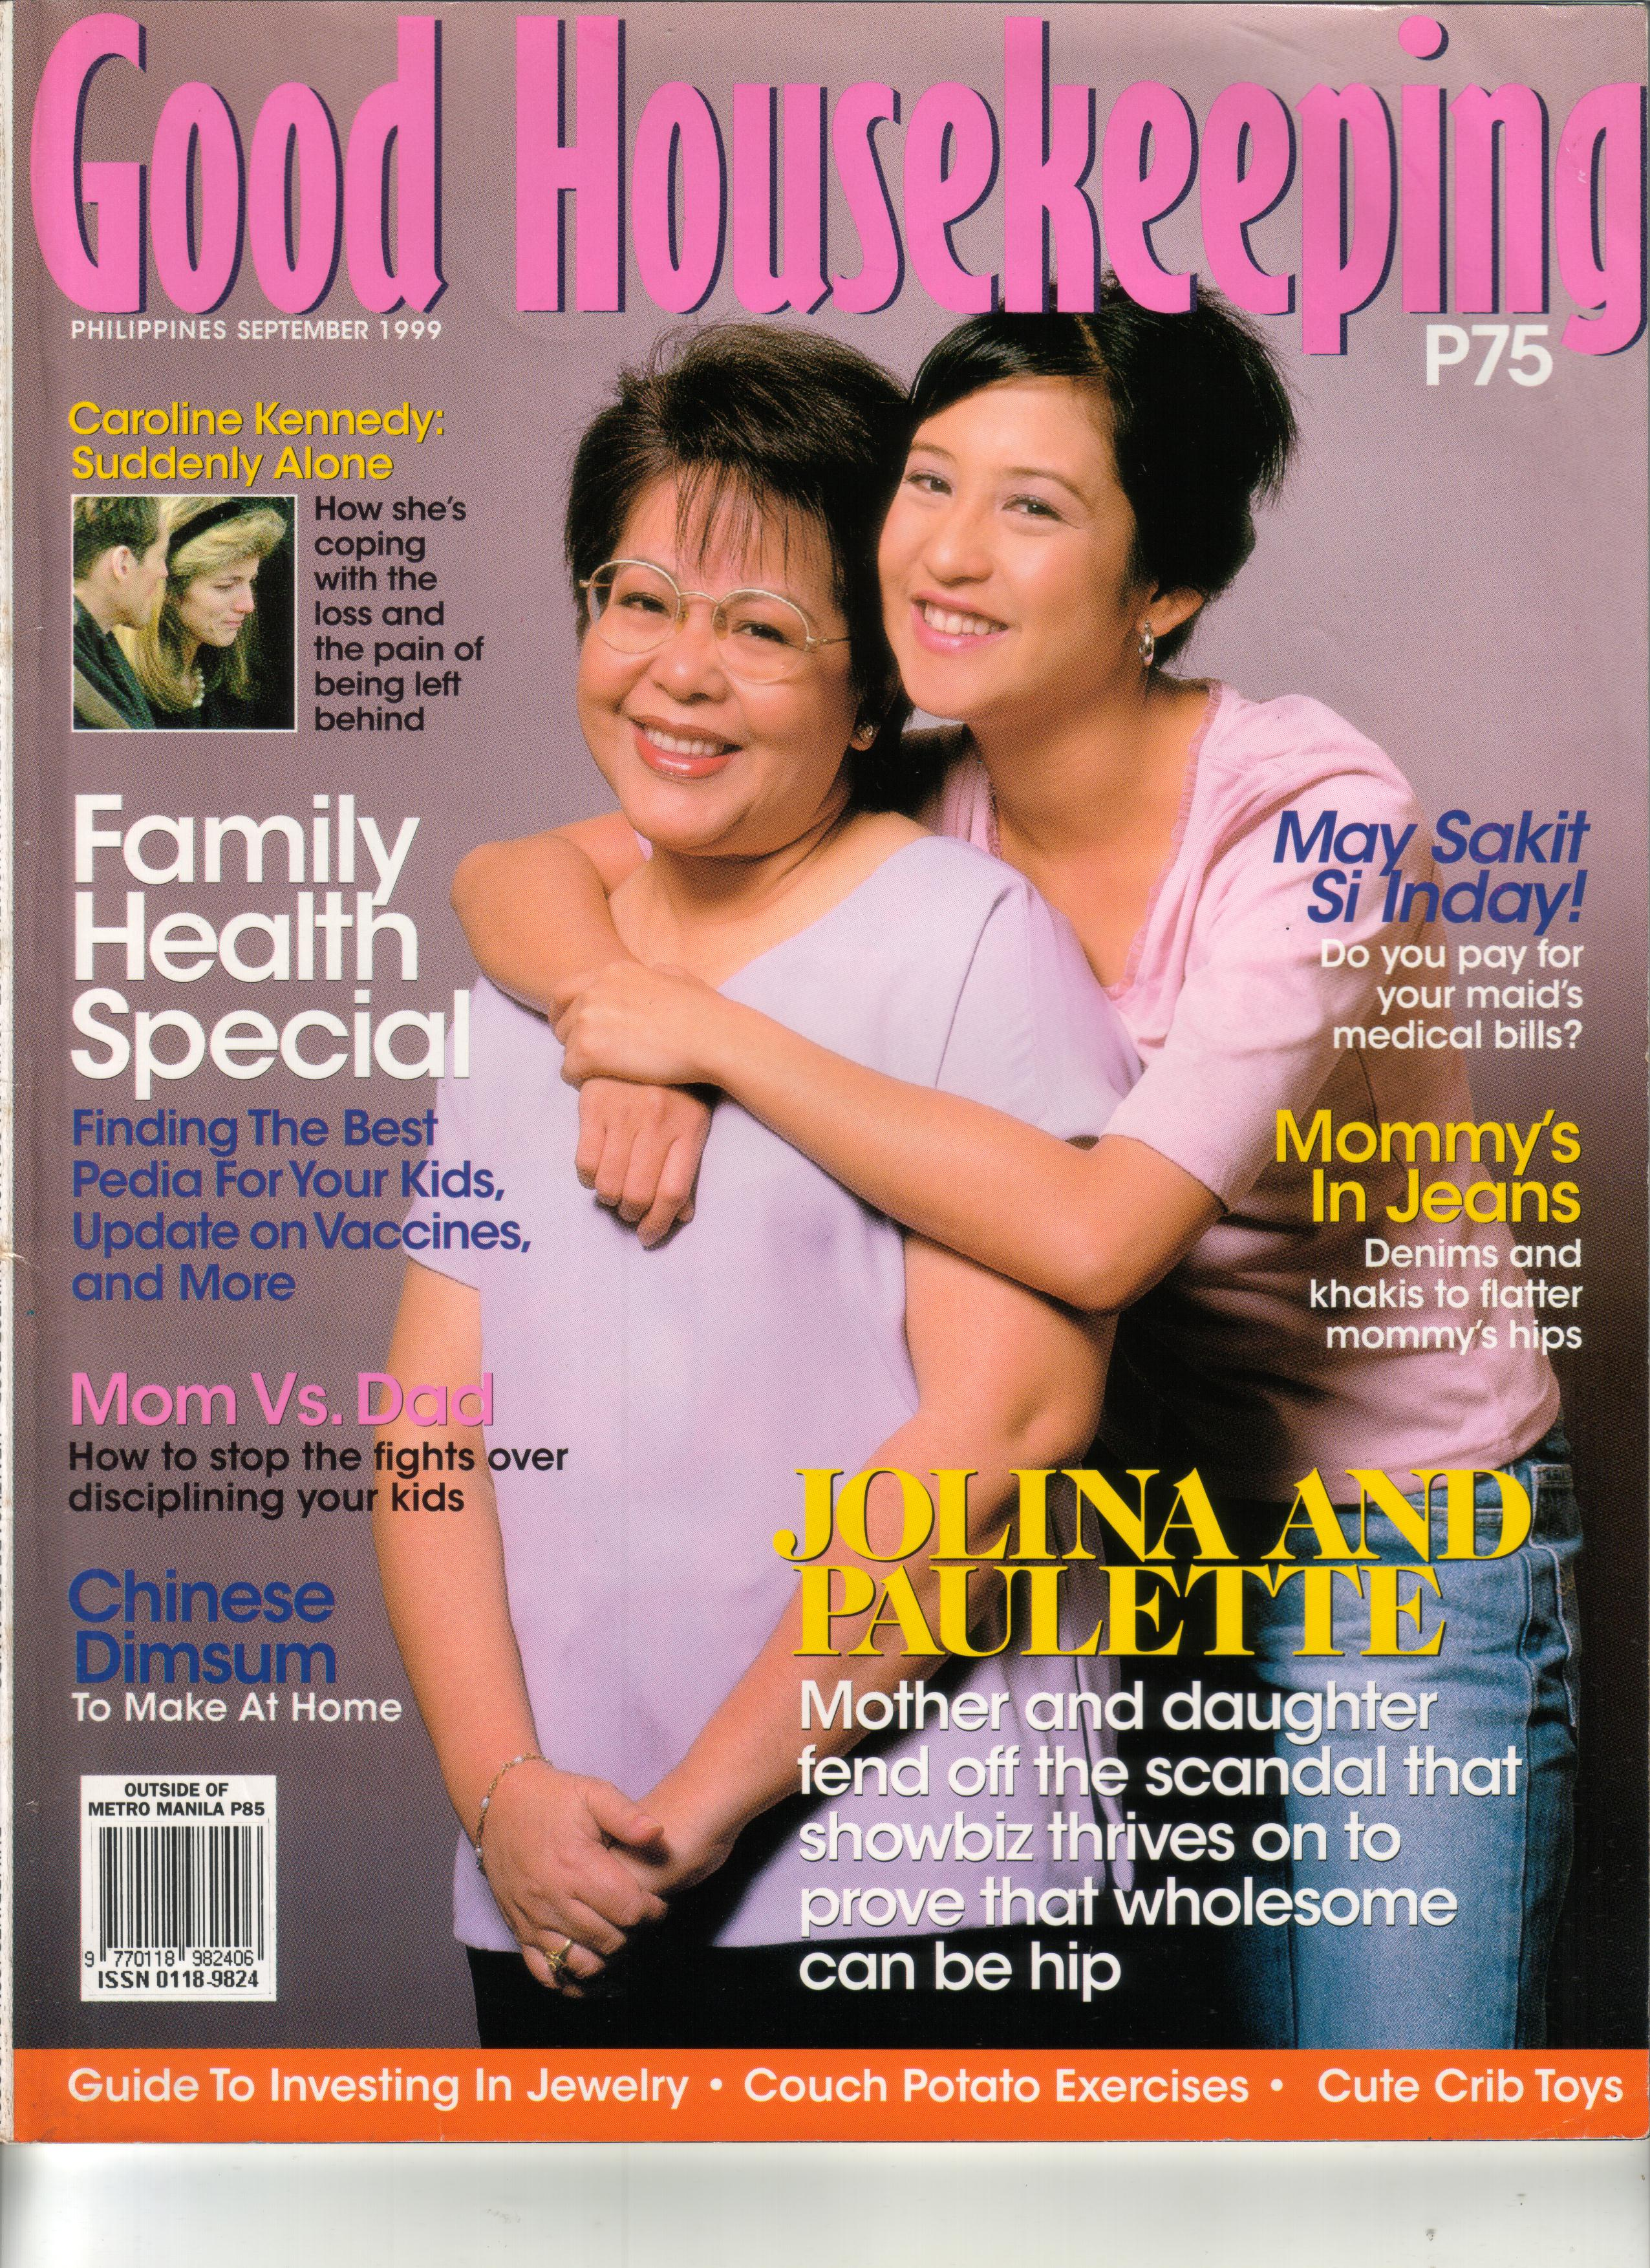 09-99 GH Cover